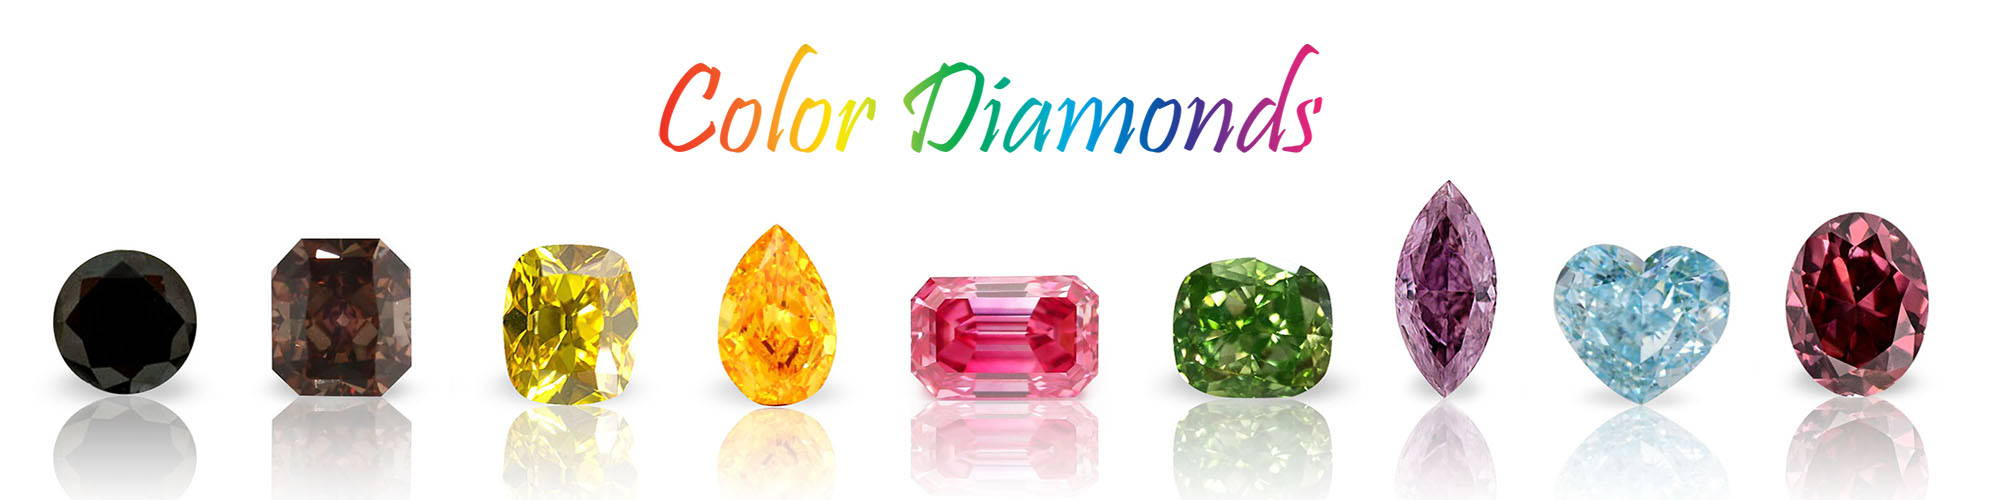 strong stones fancy in color index reports fullarticle coloredfoundation diamond colored demand for diamonds blue